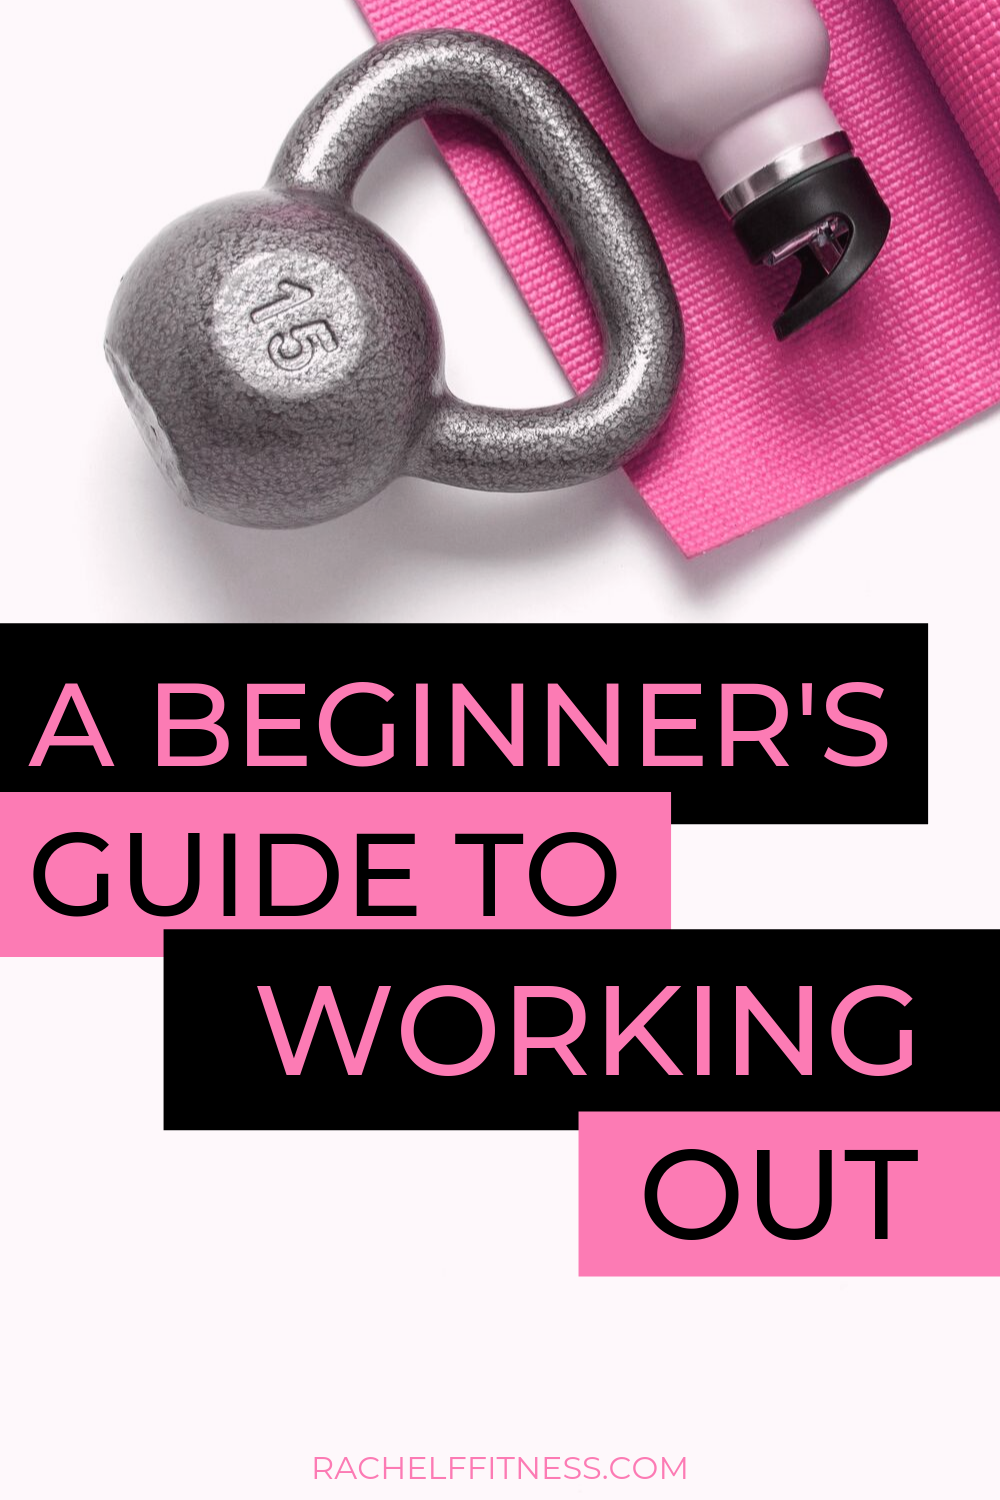 A Beginner's Guide to Working Out